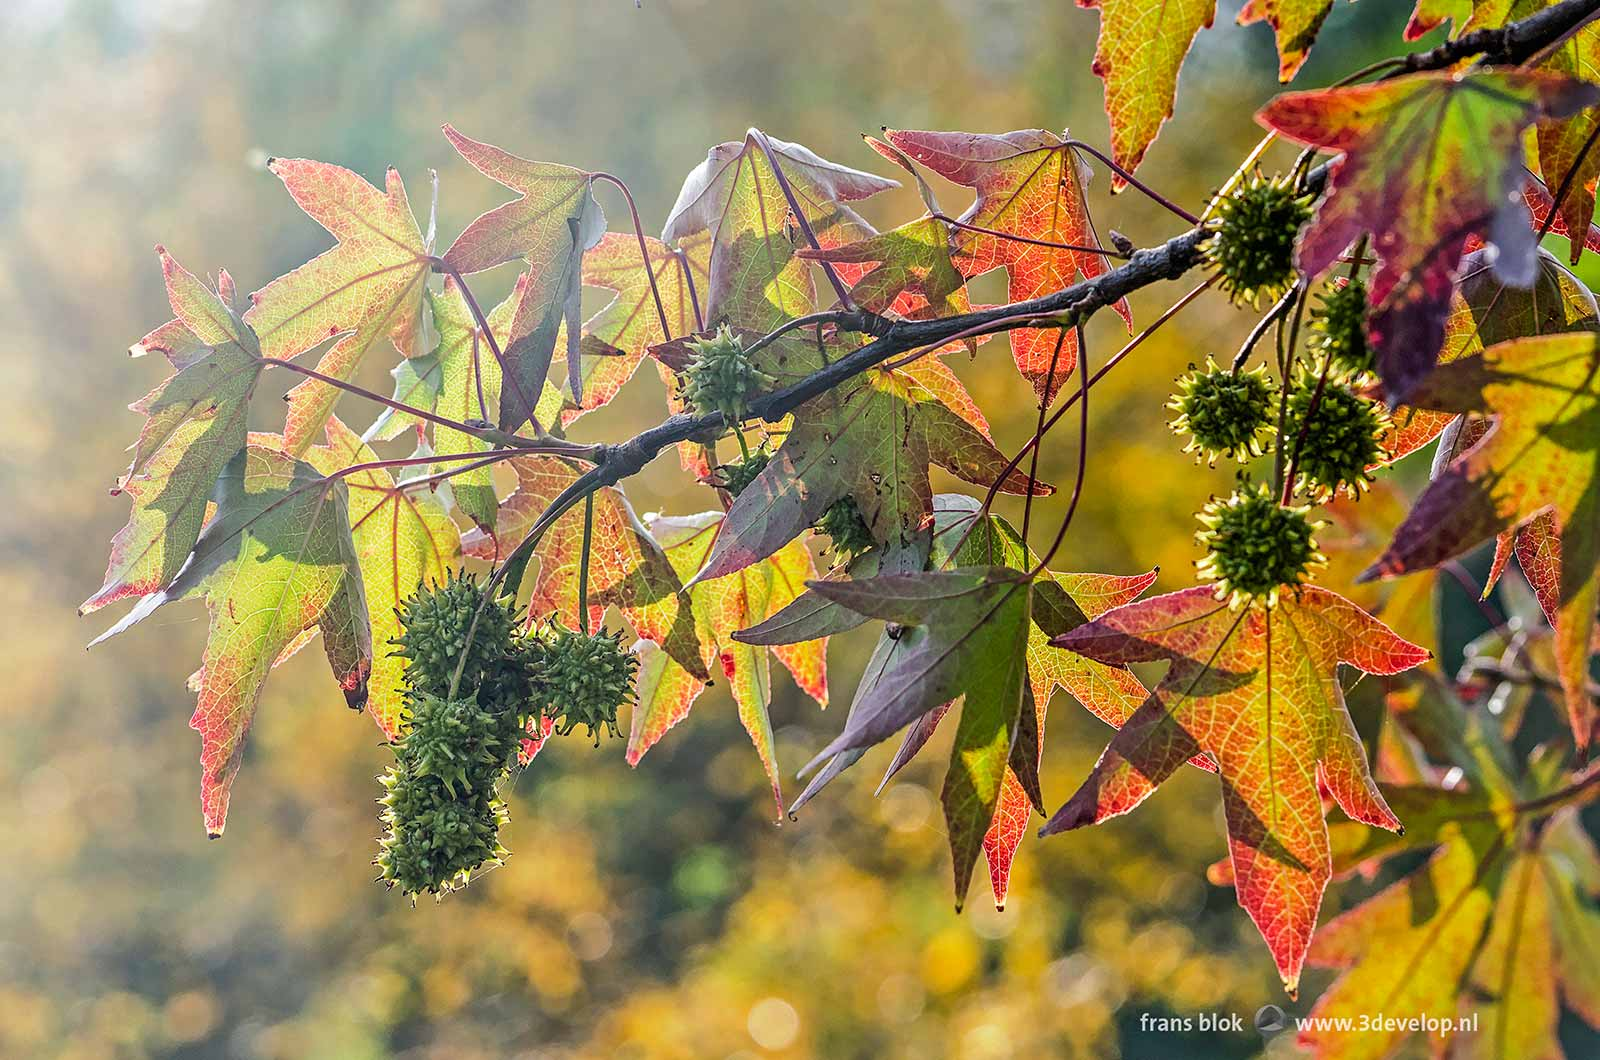 Fairytale image of the leaves and fruits of a sweet gum tree (liquidambar styraciflua) in autumn